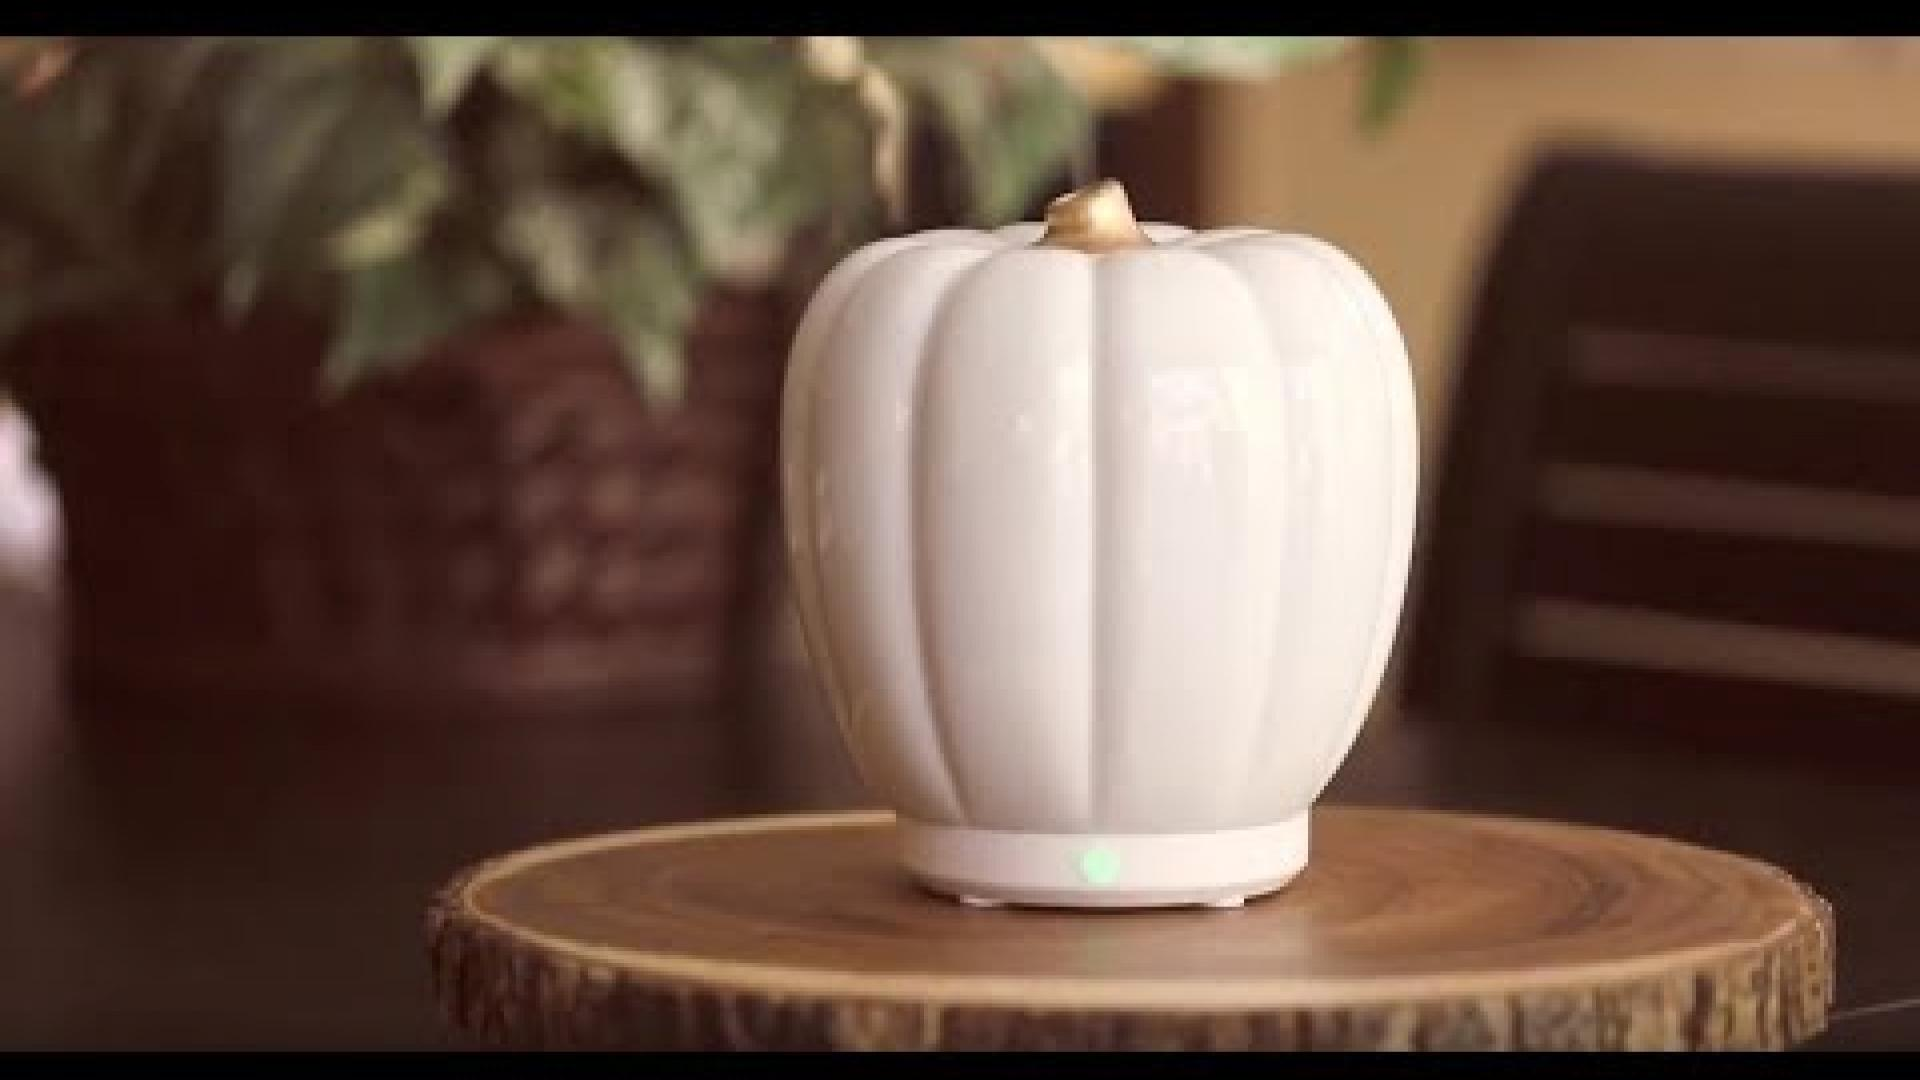 SpaRoom Pumpkin Ceramic Ultrasonic Essential Oil Diffuser